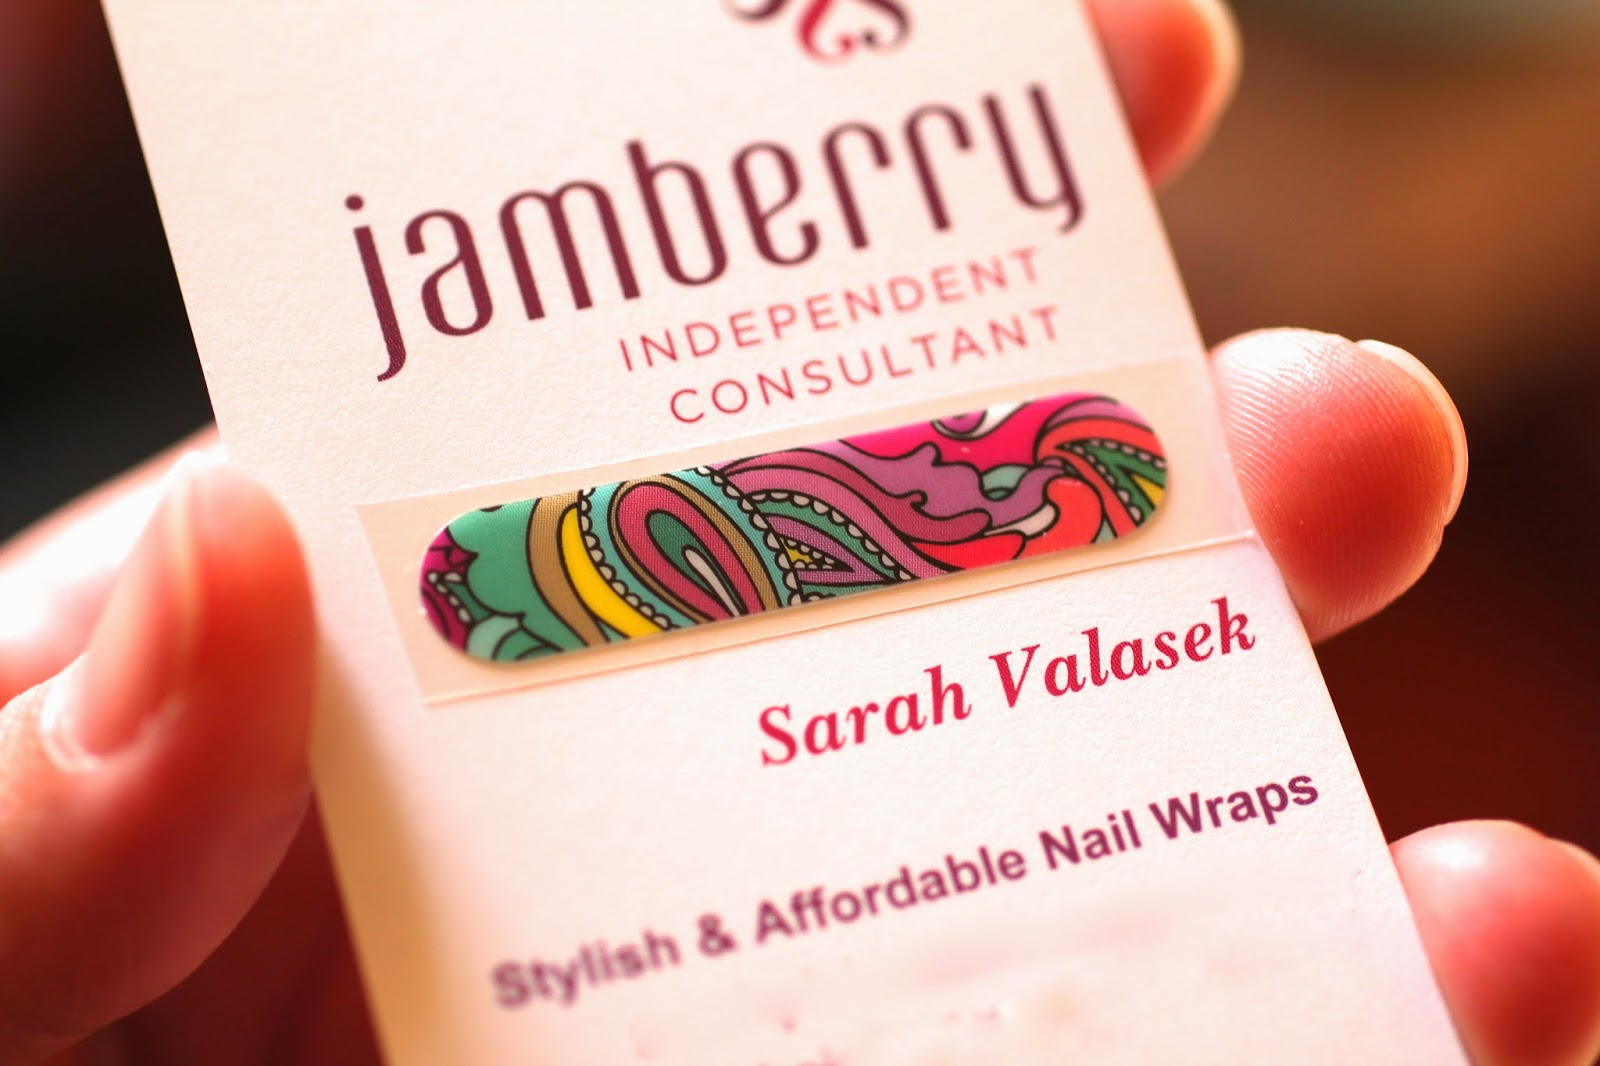 Jamberry business cards unlimitedgamers jamberry business cards reheart Images